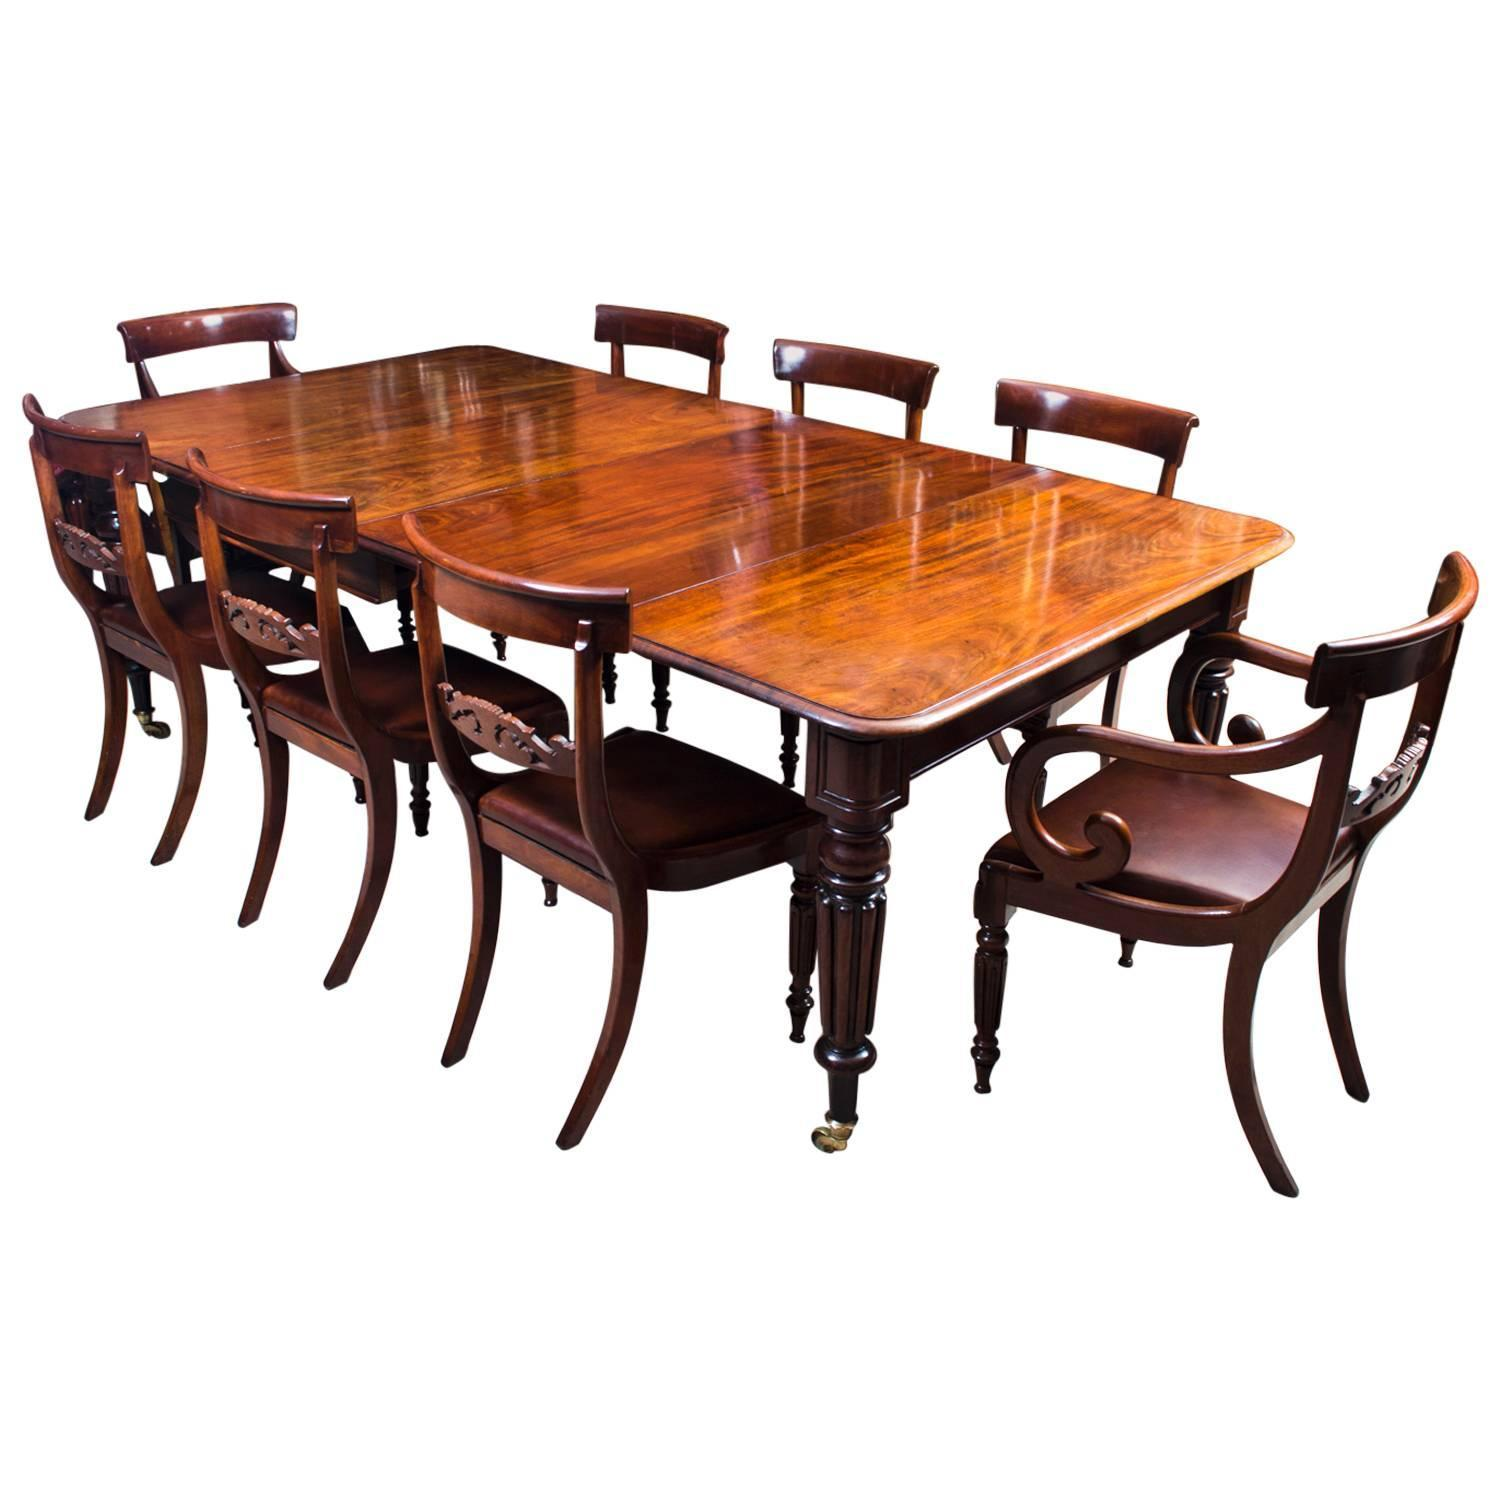 antique regency gillows dining table 8 regency chairs